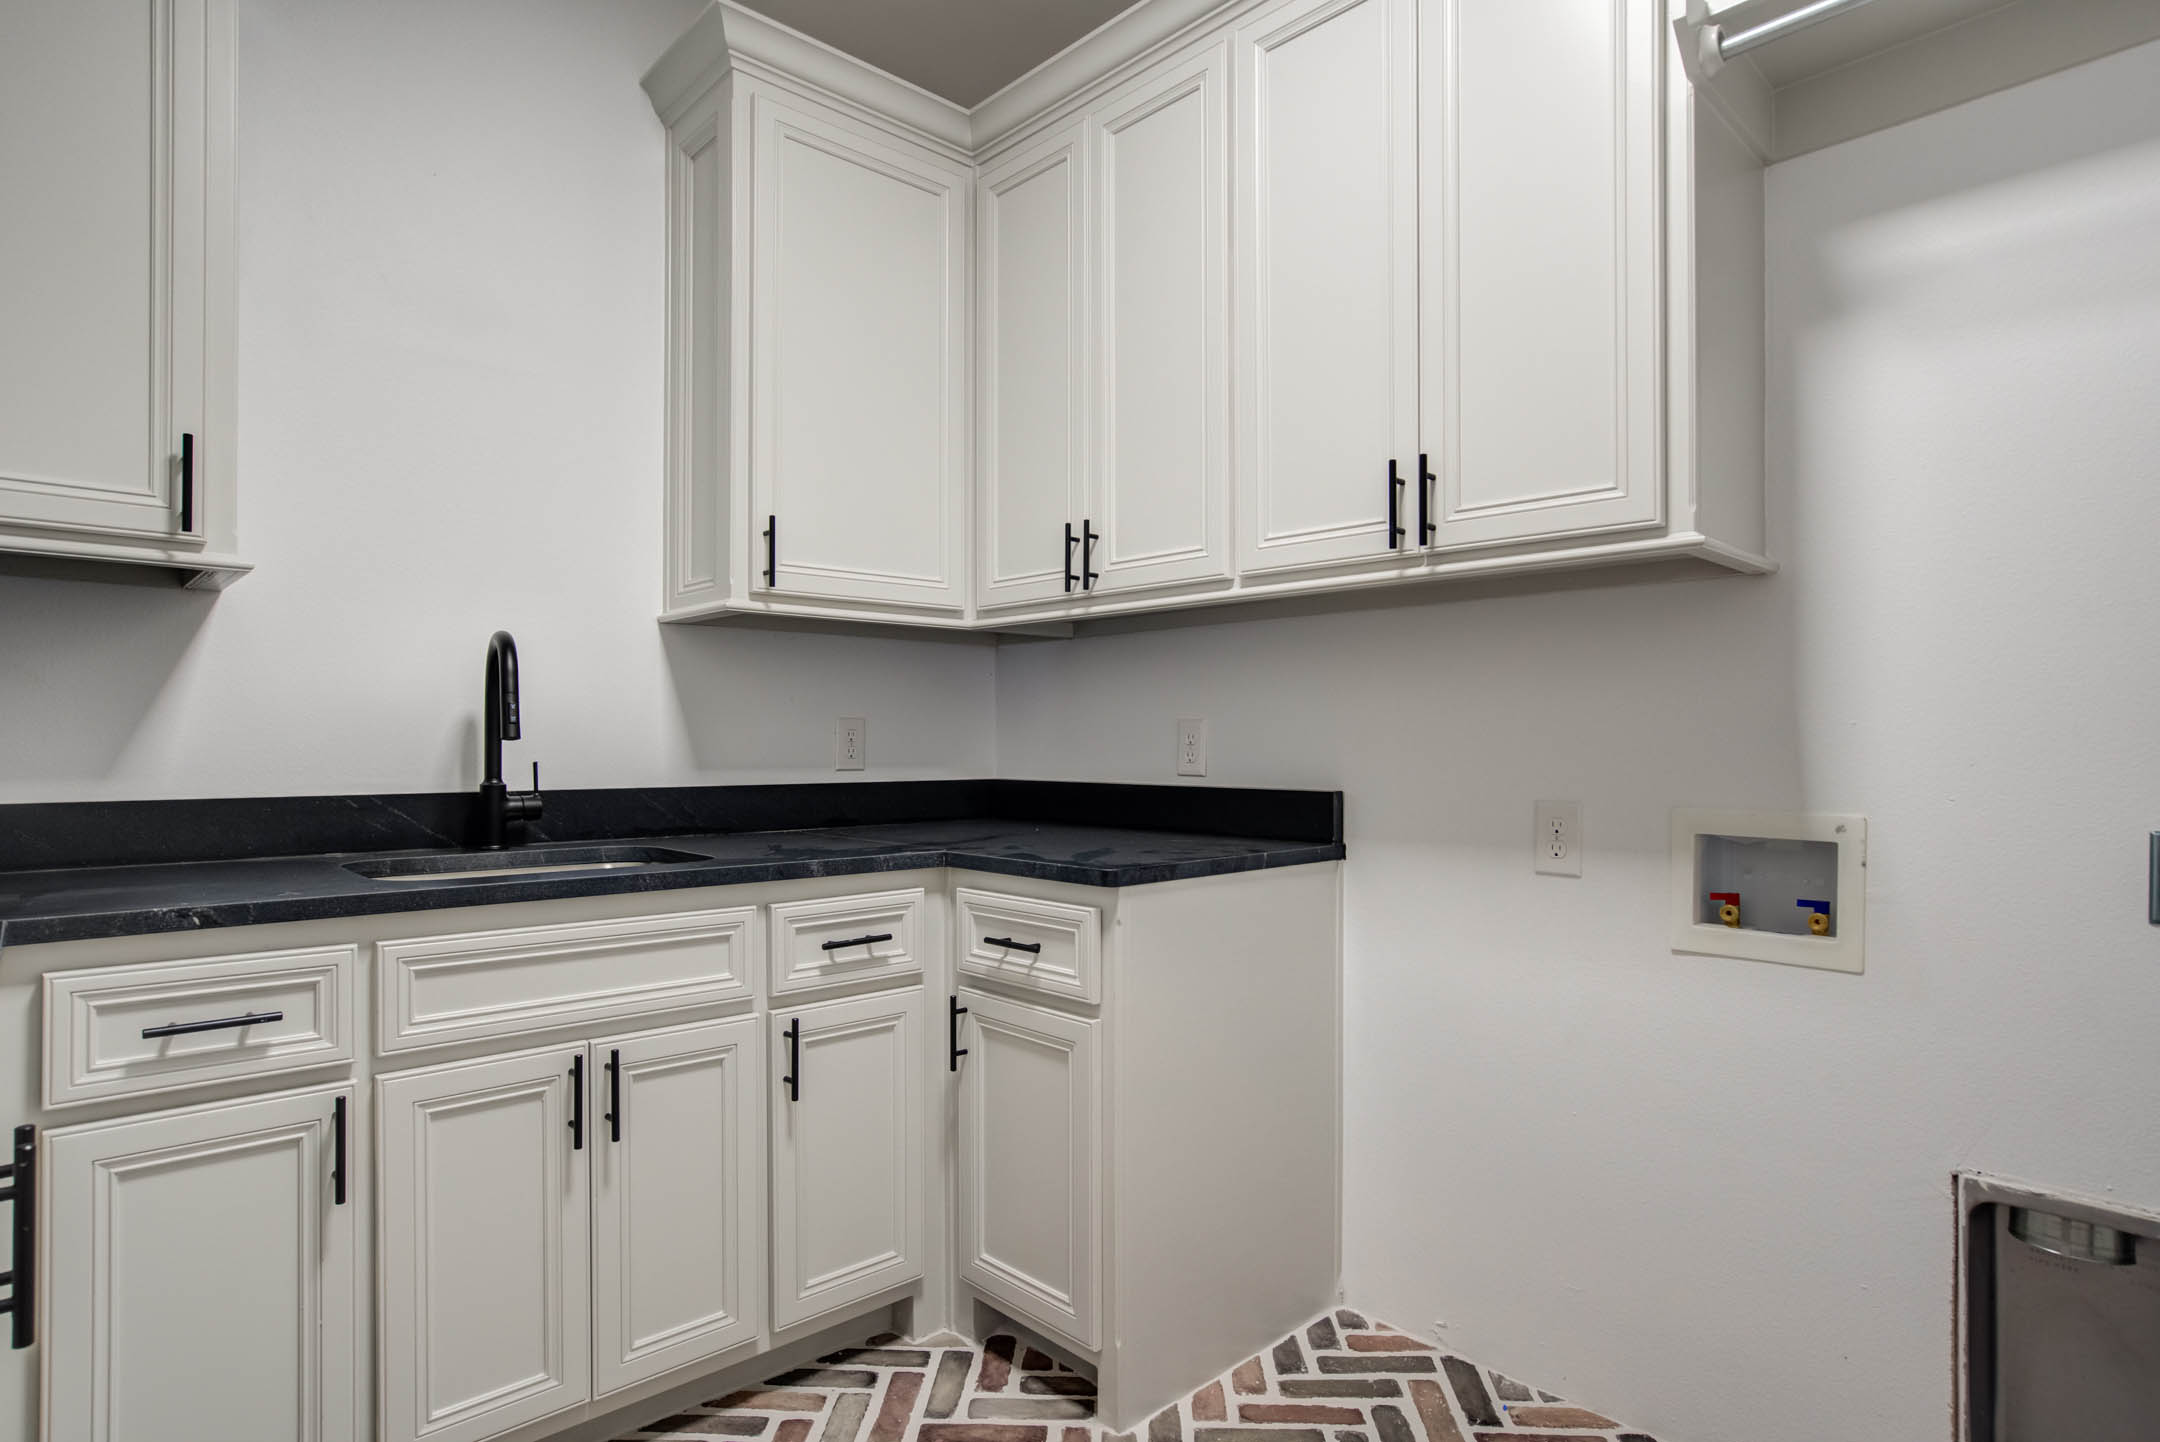 Laundry-mud room area in new home for sale near Lubbock.